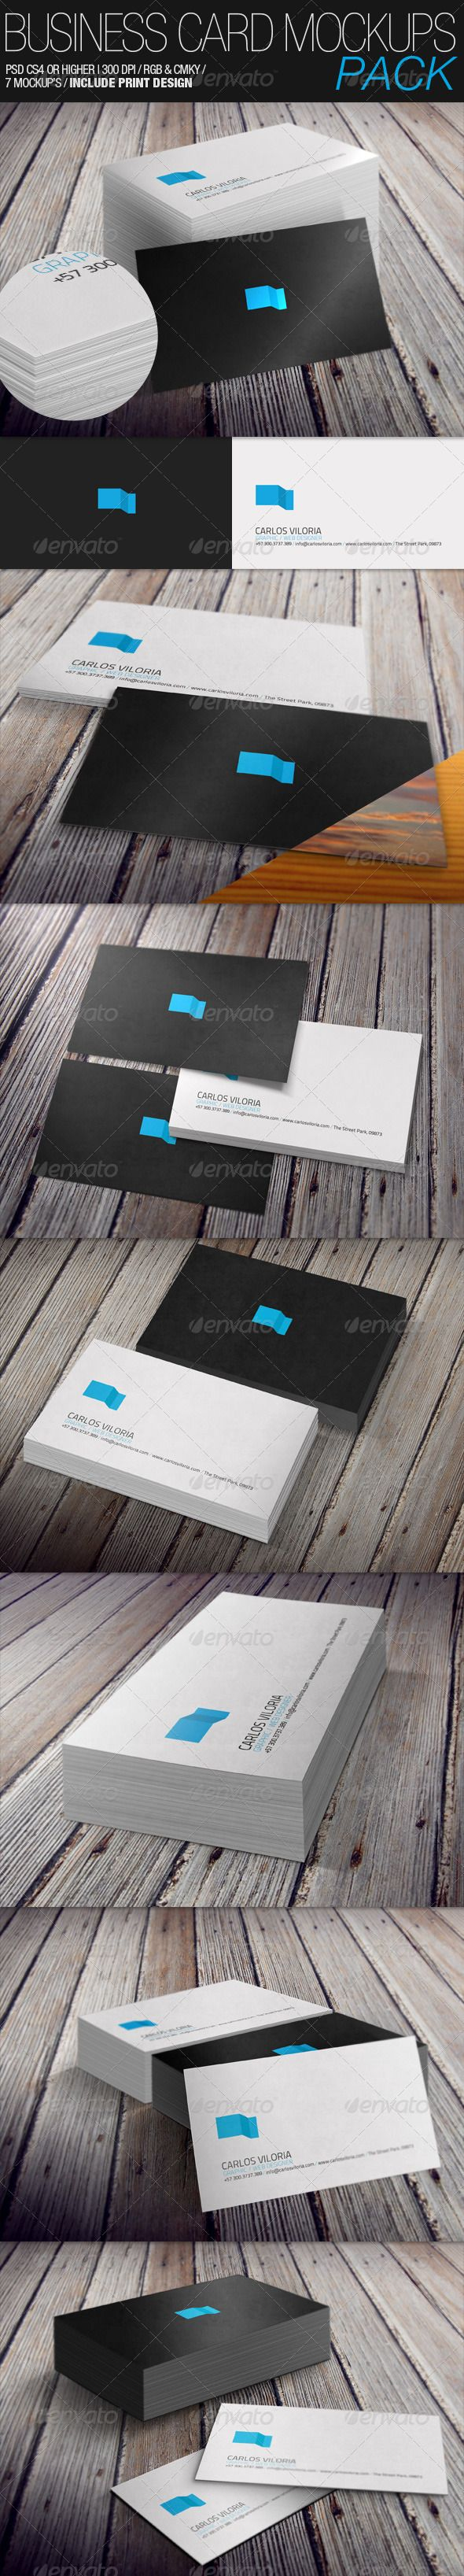 718 best business card mockup images on pinterest miniatures business card mockups pack reheart Image collections